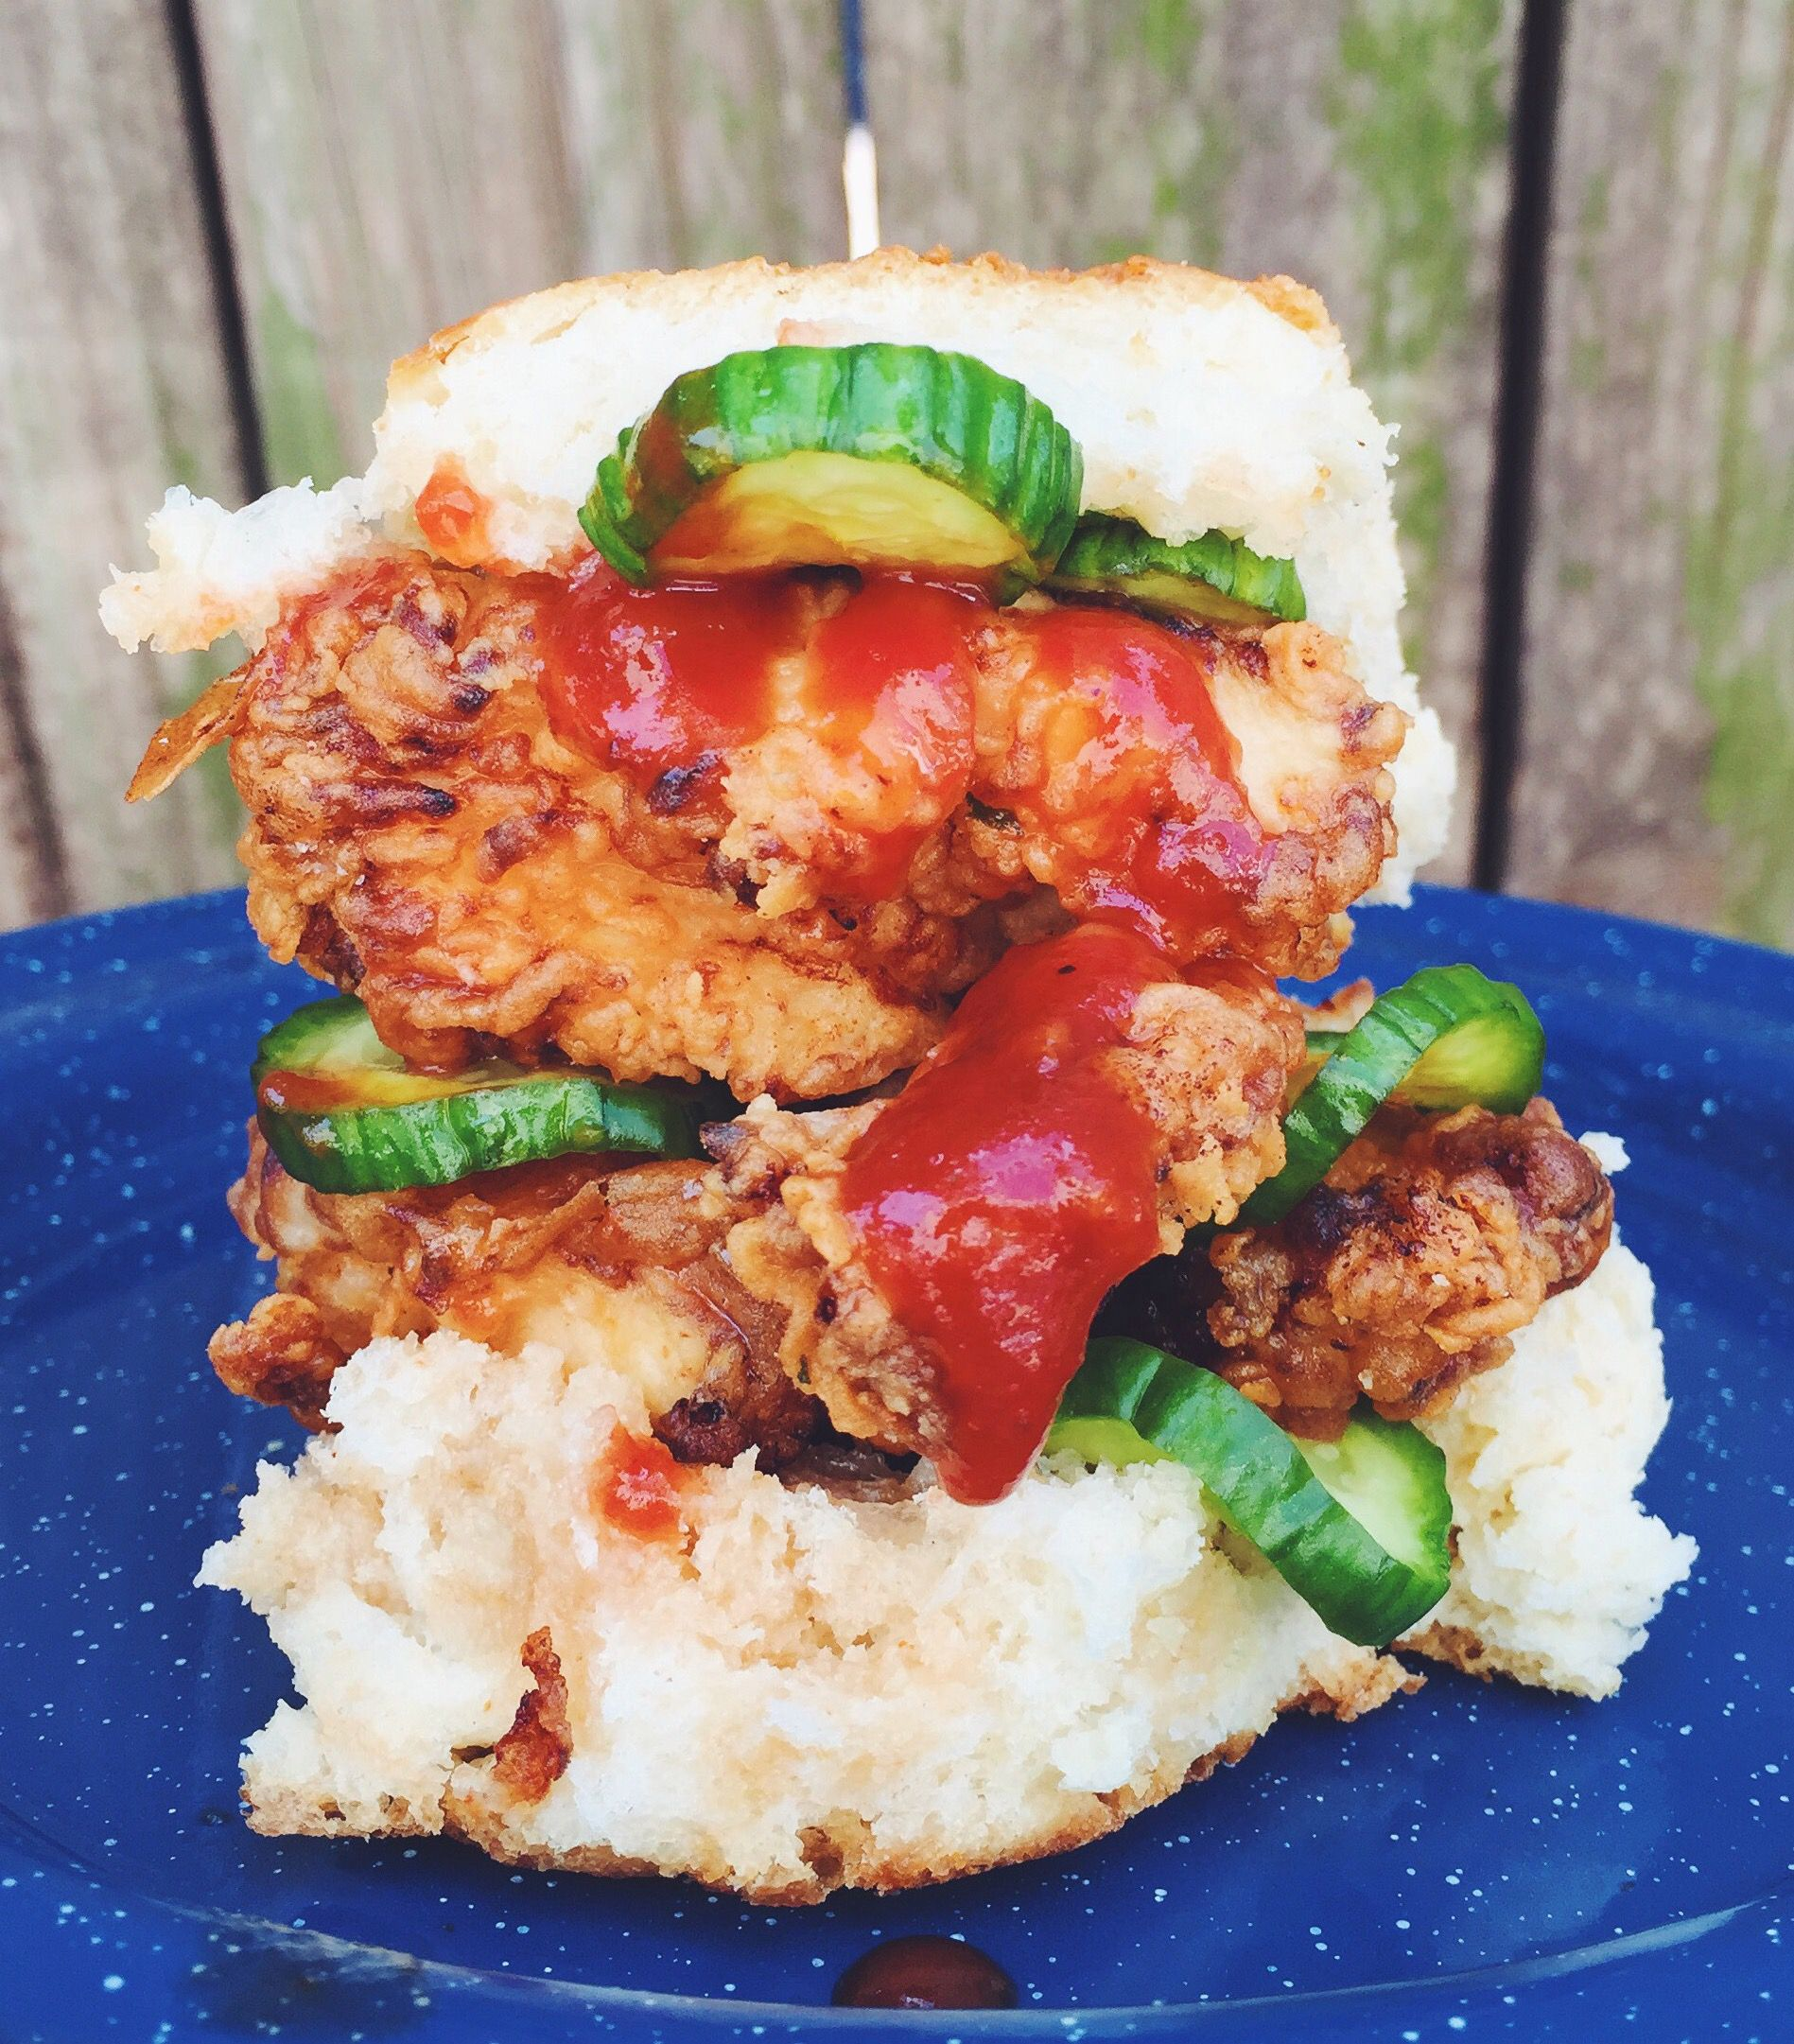 Spicy Chicken Biscuit Sandwiches